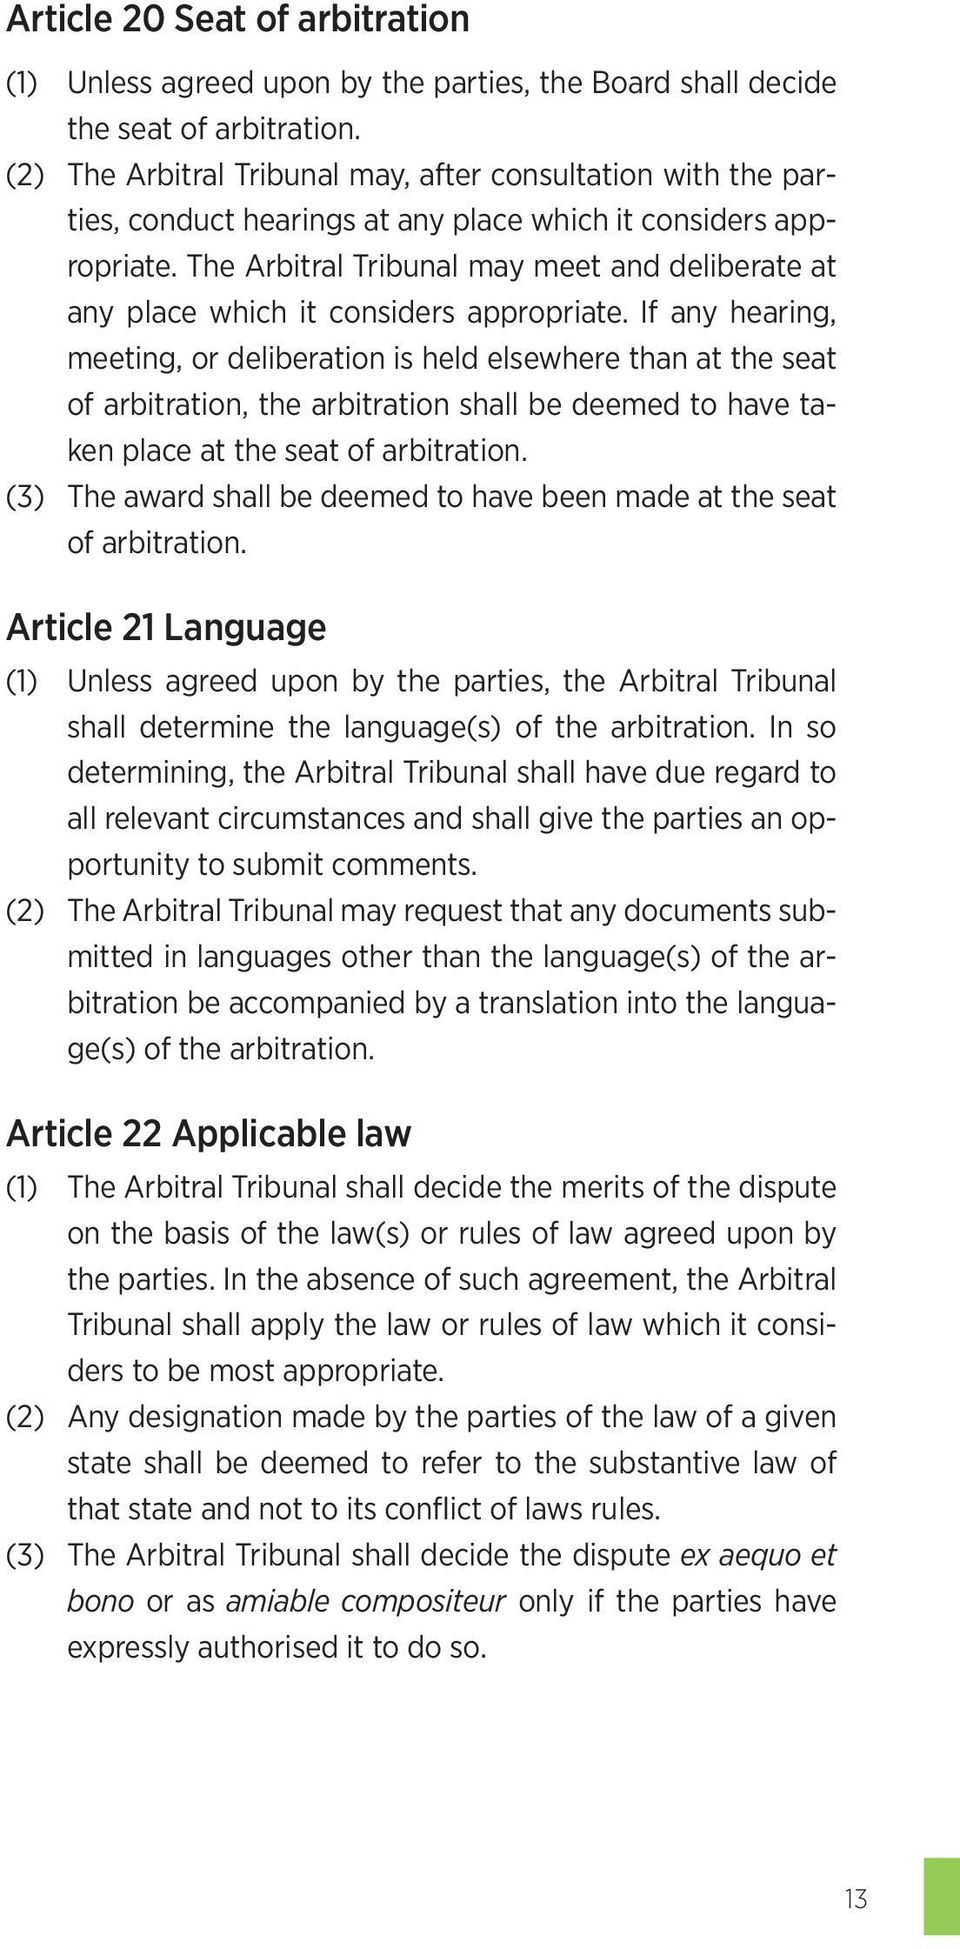 The Arbitral Tribunal may meet and deliberate at any place which it considers appropriate.